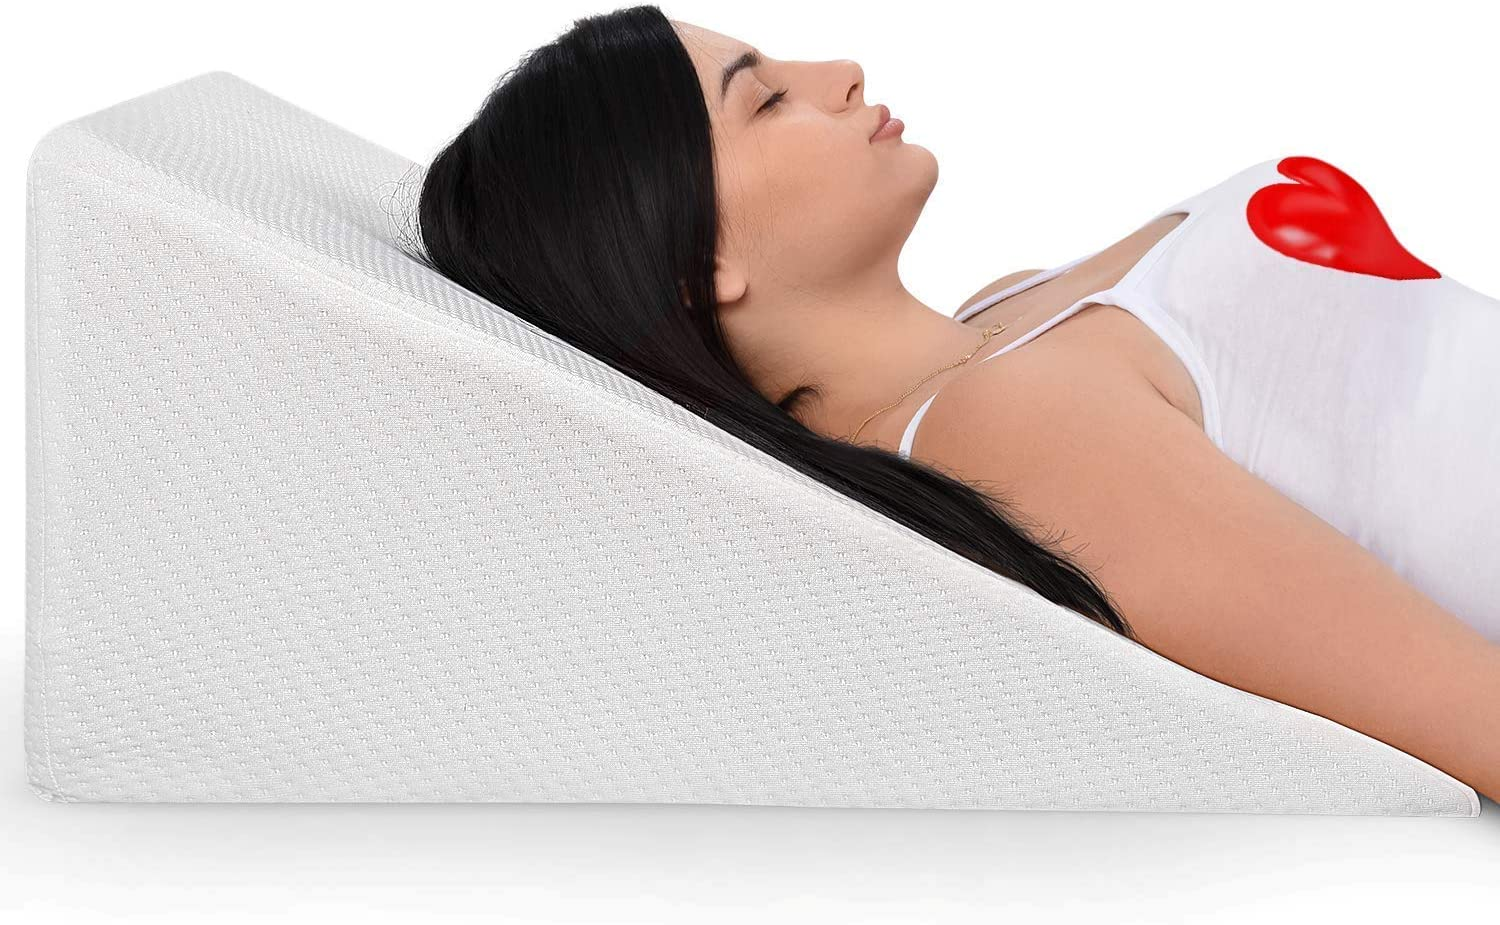 Bed Wedge Pillow With Memory Foam Top Ideal For Comfortable Restful Sleeping Alleviates Neck Back Pain Acid Reflux Snoring Heartburn Allergies Versatile Removable Washable Cover